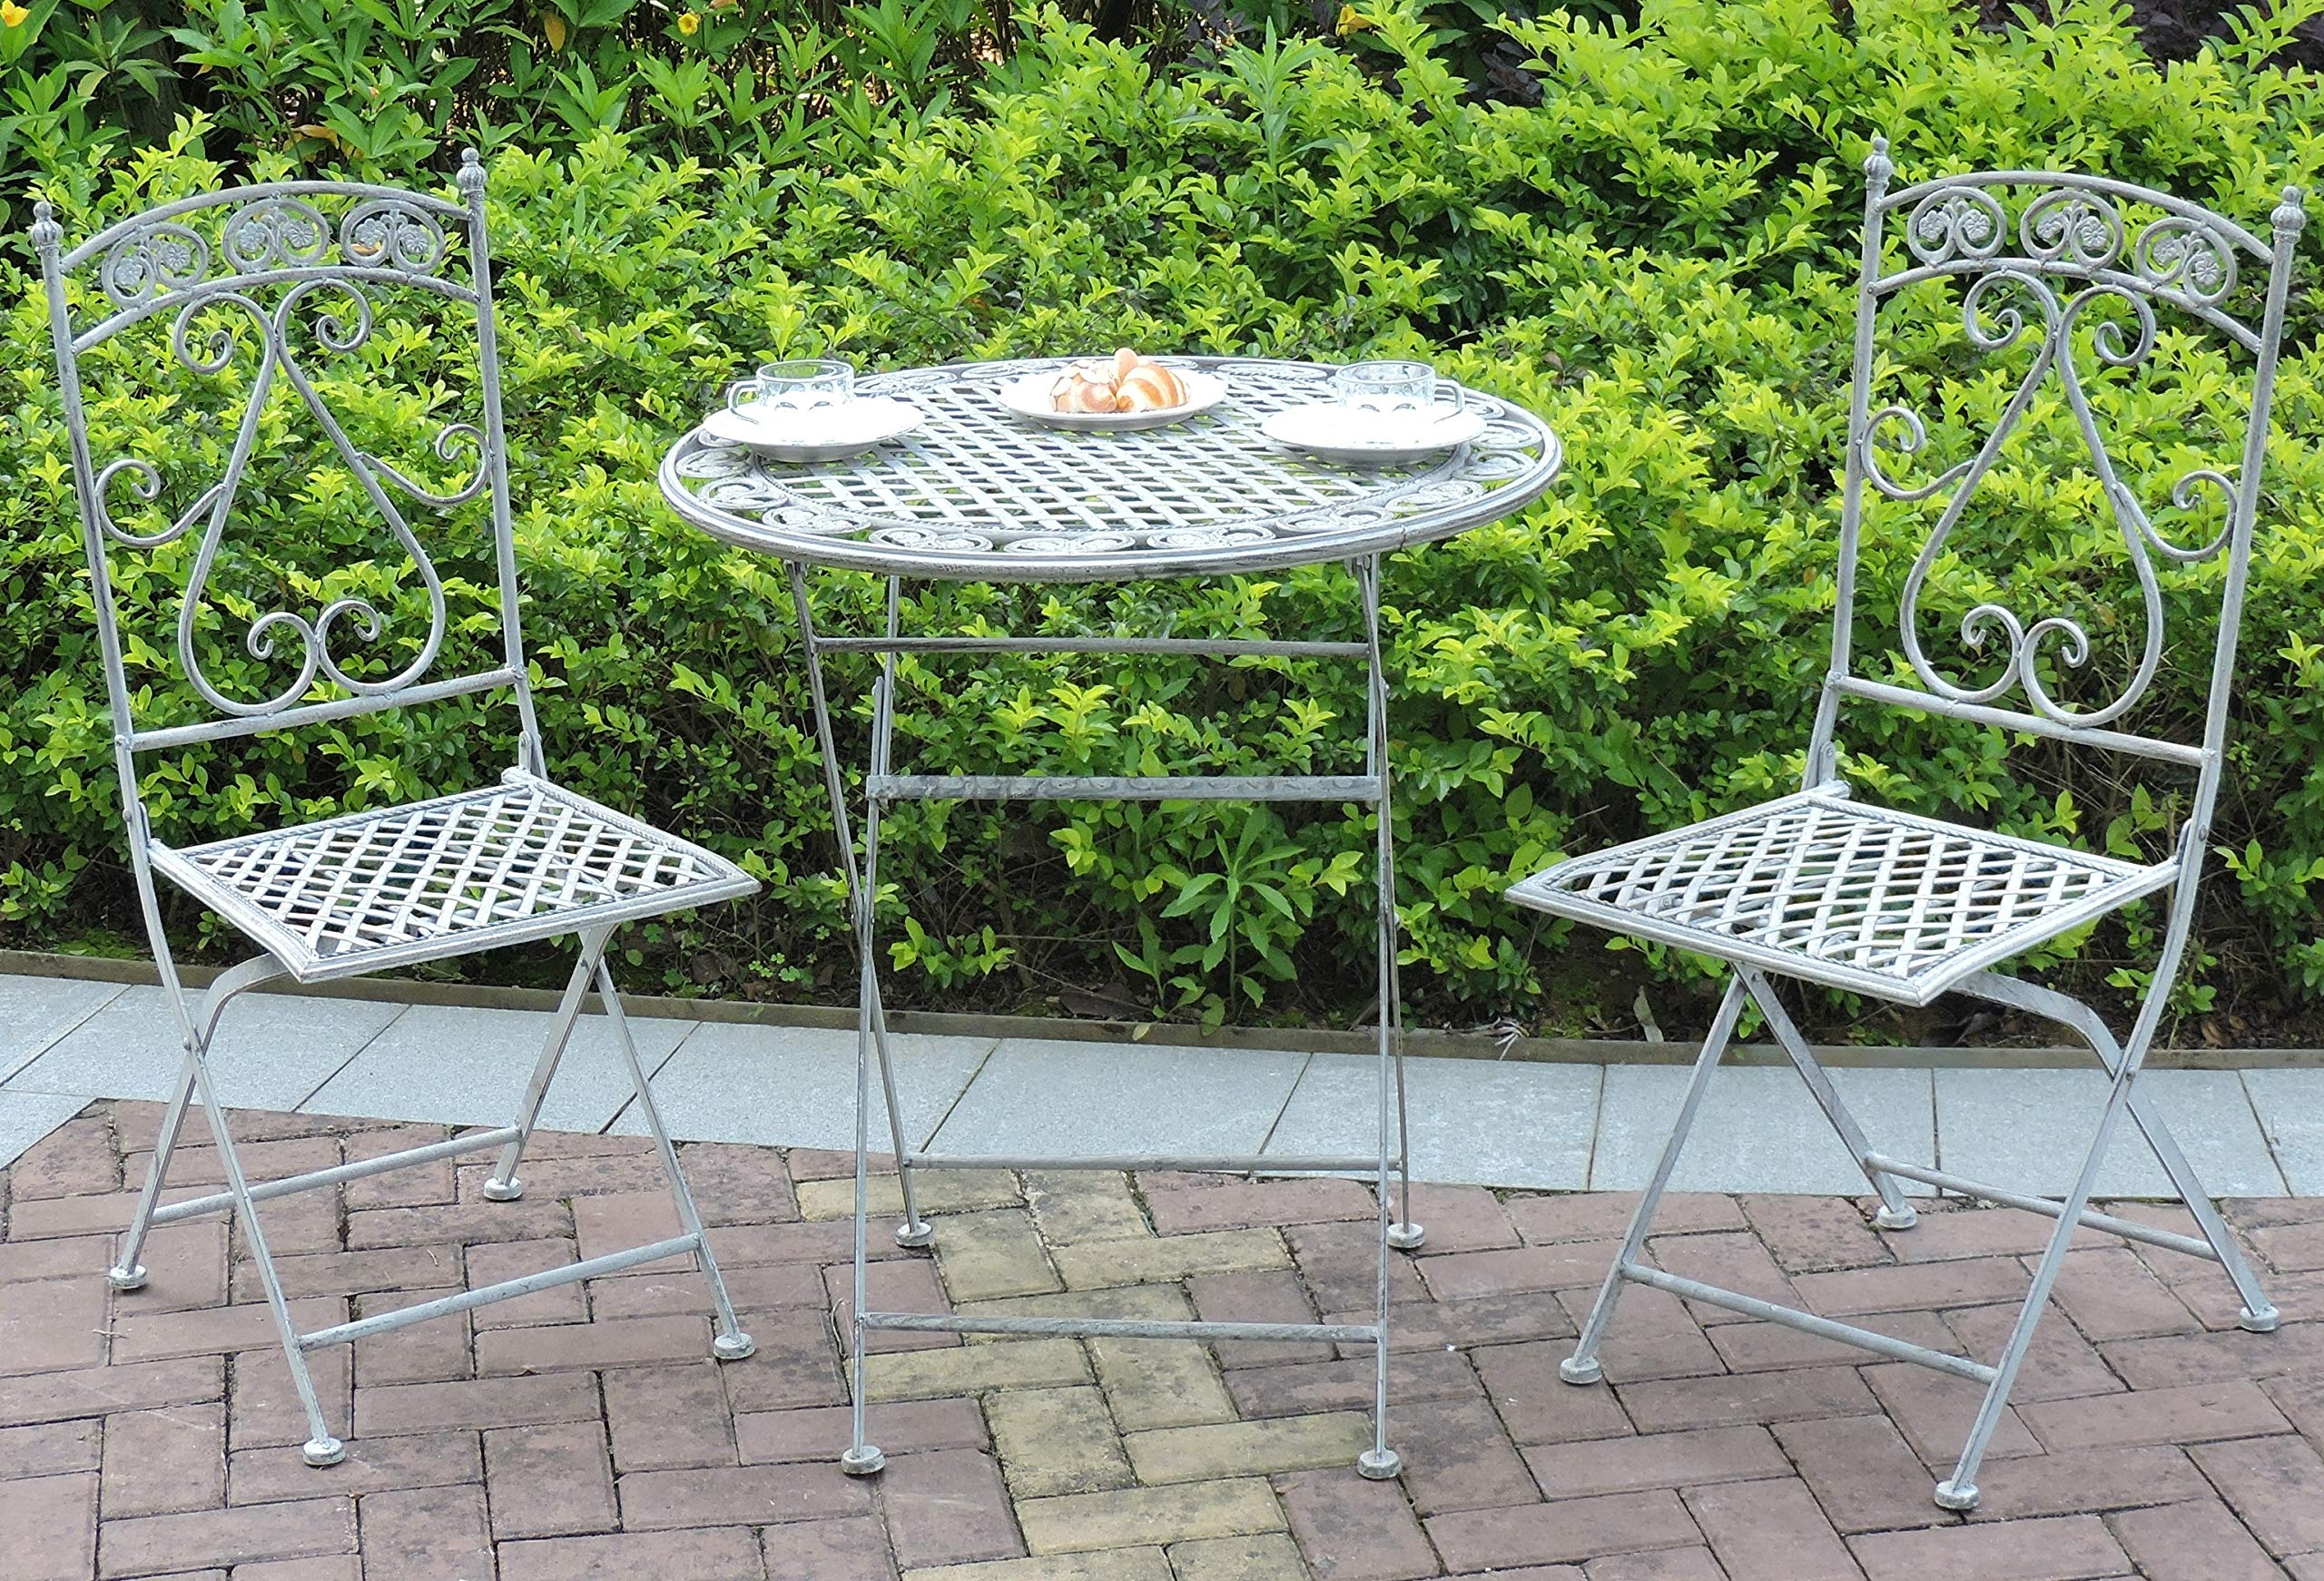 GlamHaus Garden Bistro Patio Foldable 9 Piece Metal Garden Balcony  Furniture Set Outdoor Table and Two Folding Chairs Antique Grey Beautiful  Handmade